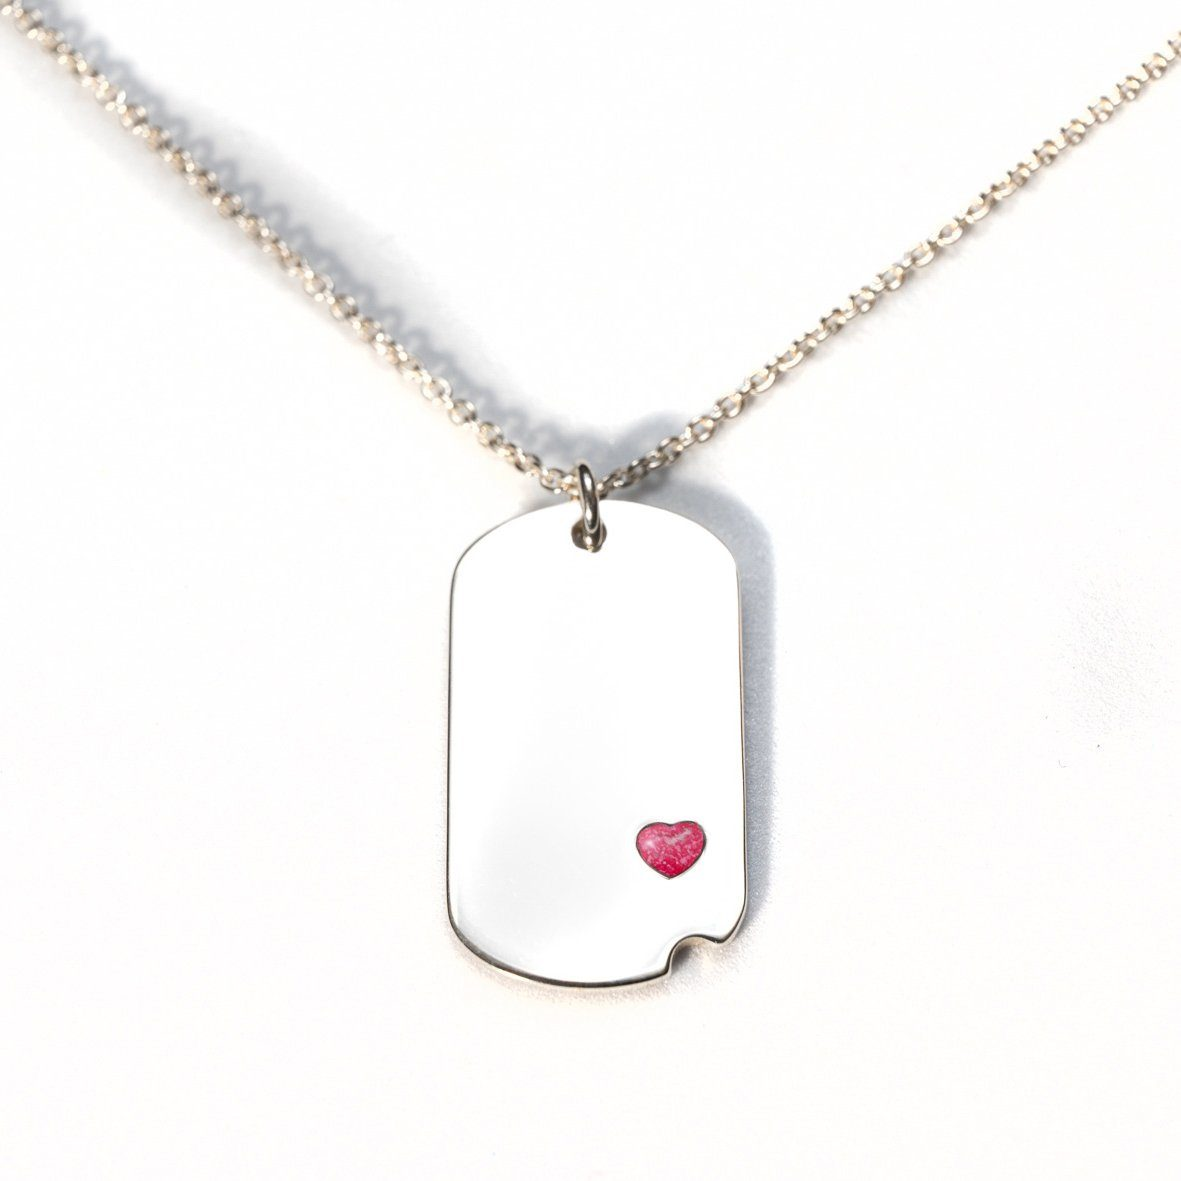 Sterling-Silver Dog Tag with Everence Inlay - Small Everence Scarlet